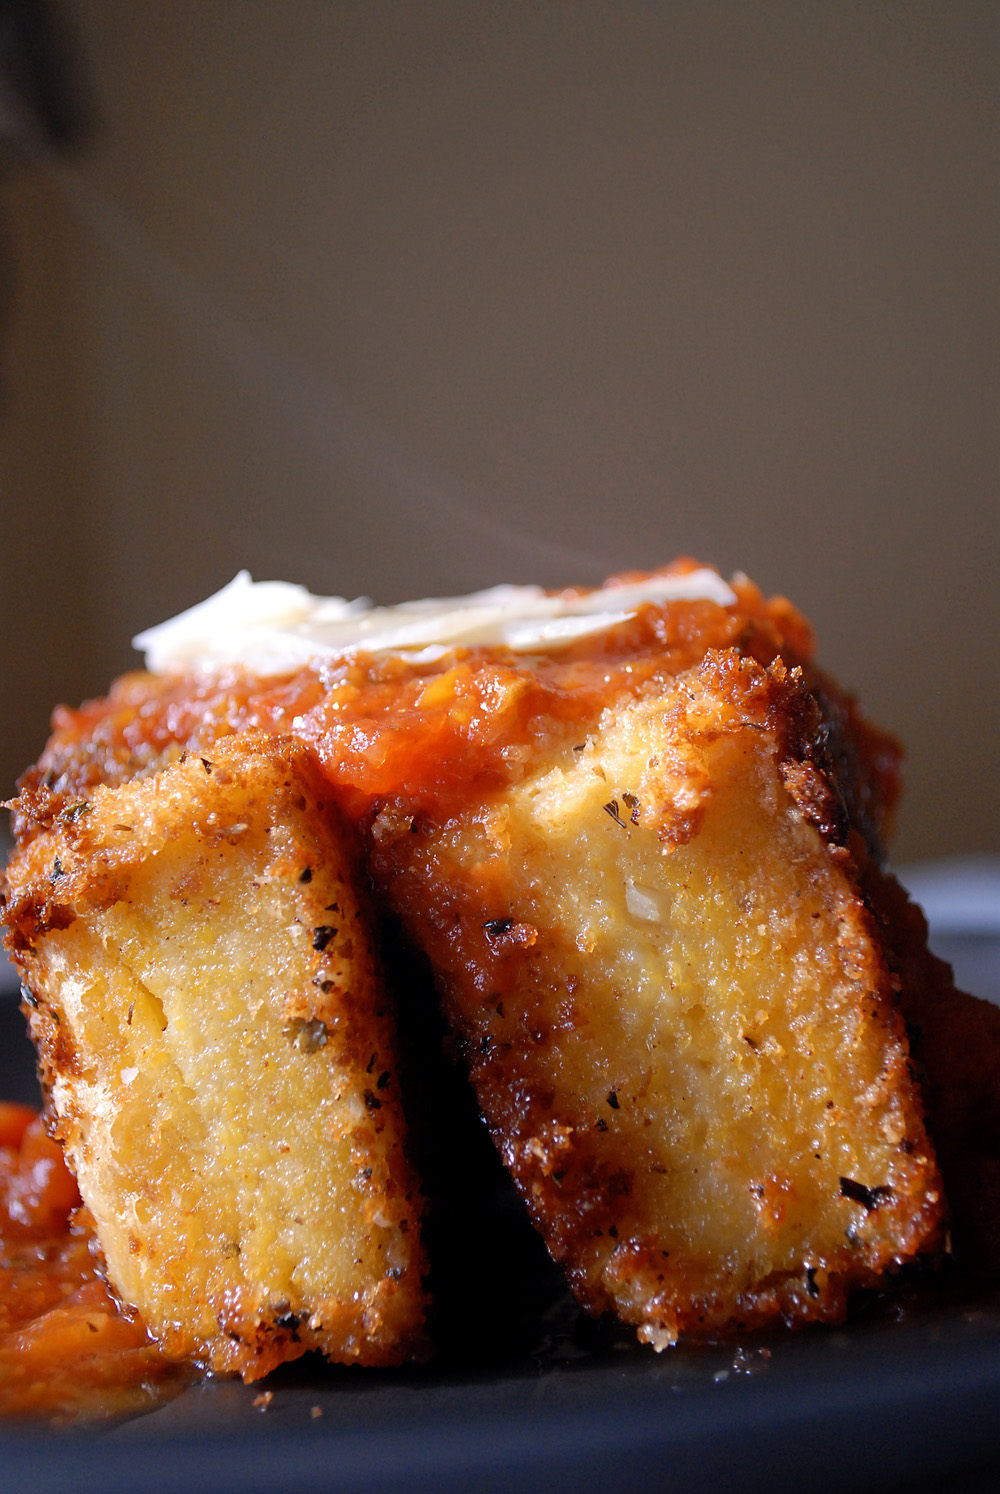 How To Make Fried Grit Cakes